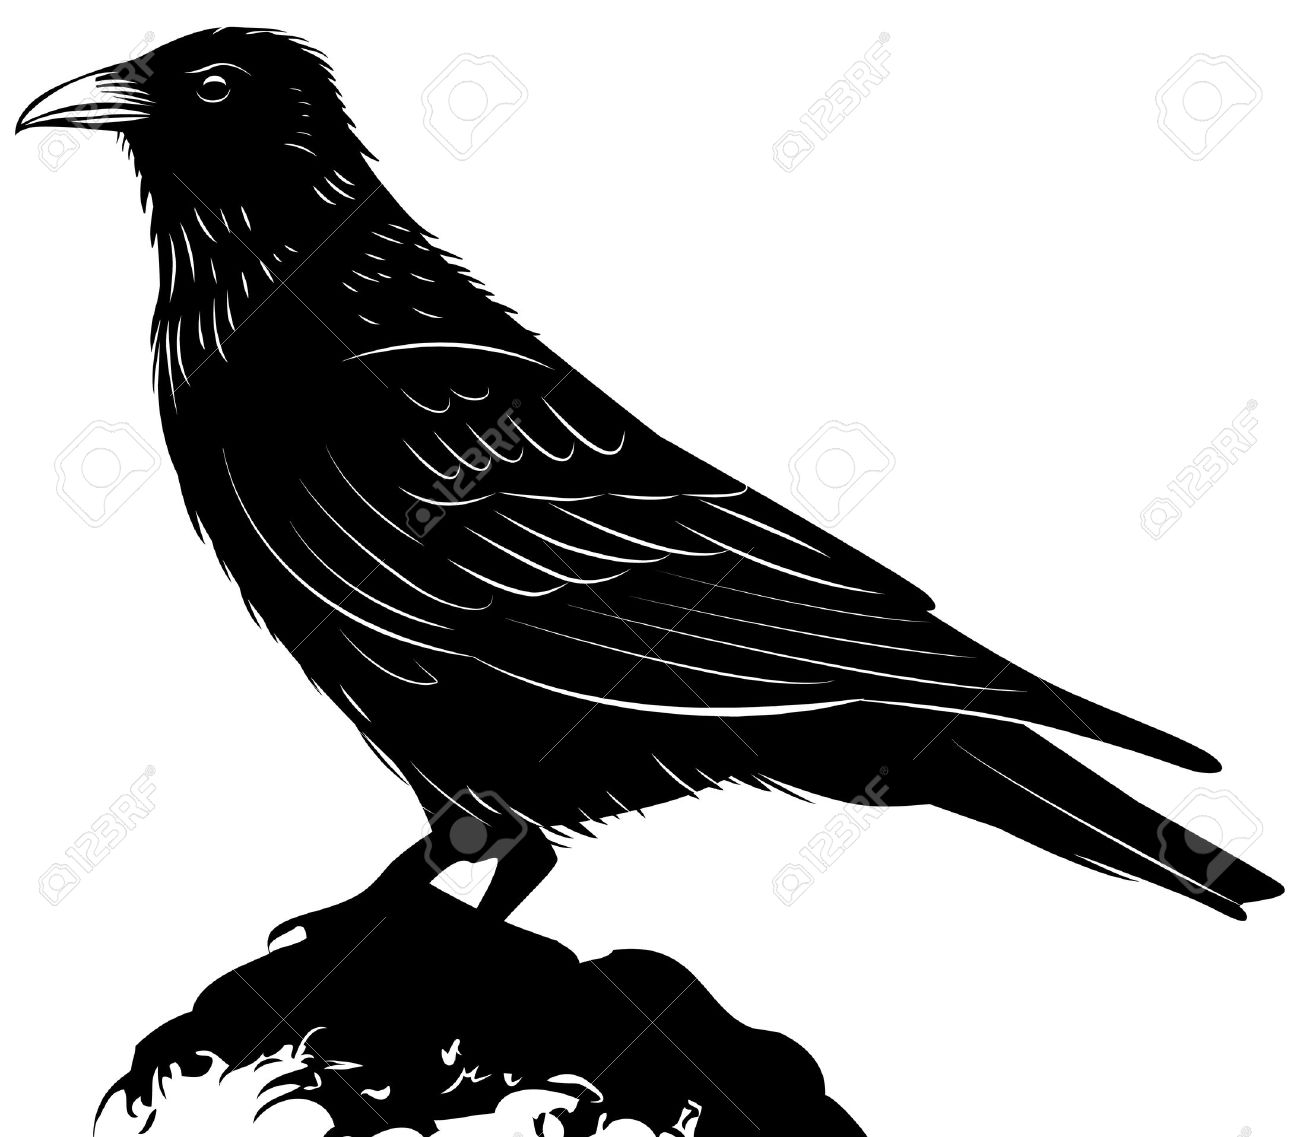 7,191 Raven Stock Vector Illustration And Royalty Free Raven Clipart.